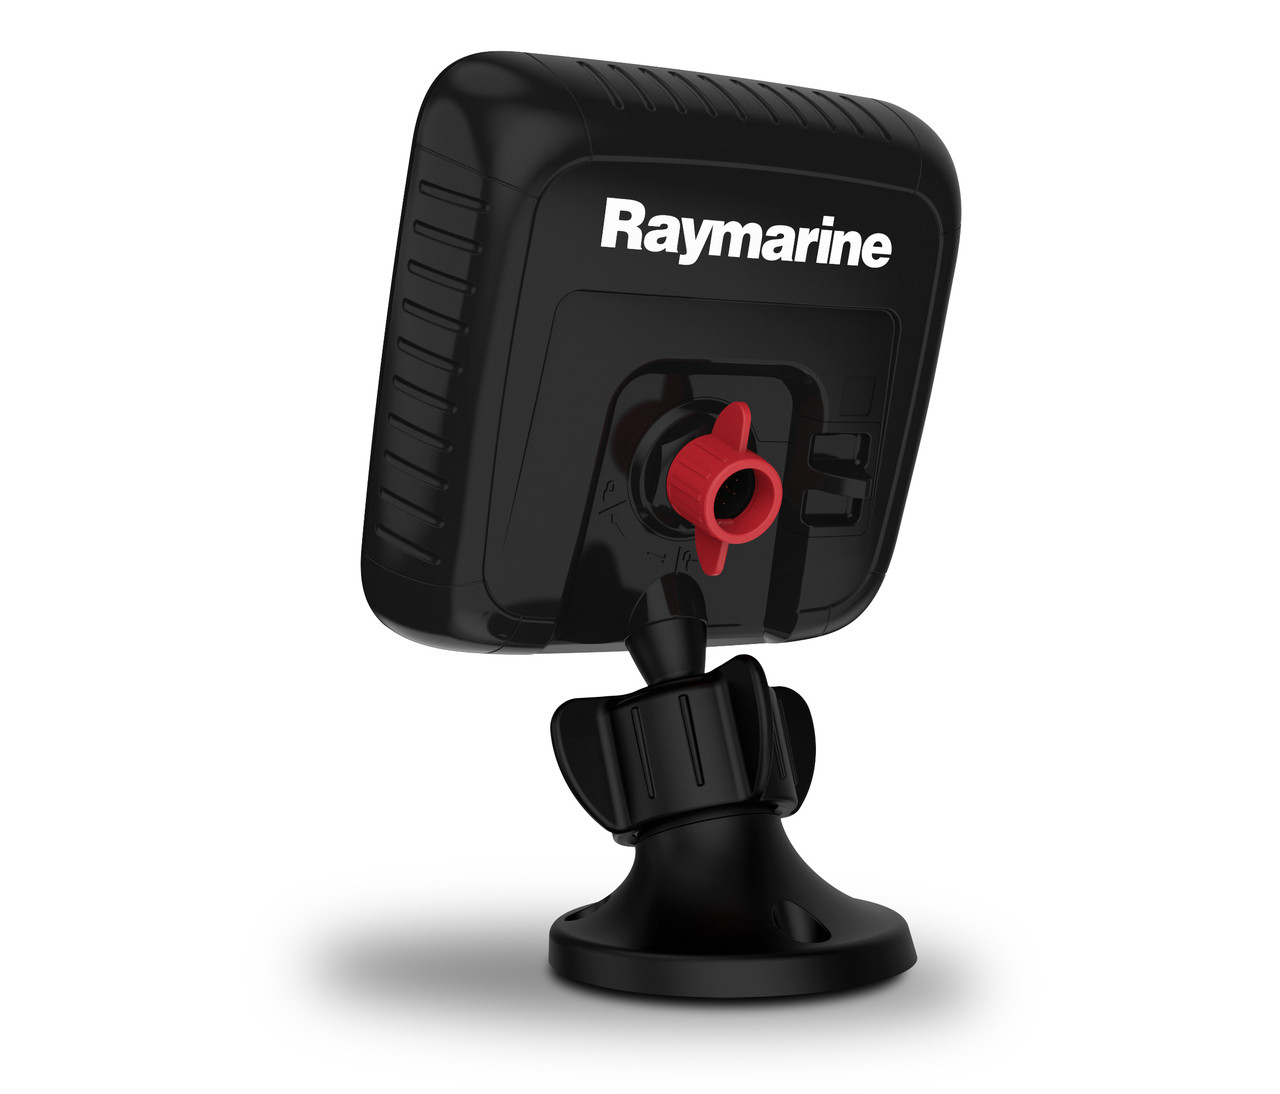 Raymarine Dragonfly 4PRO Fishfinder Back View